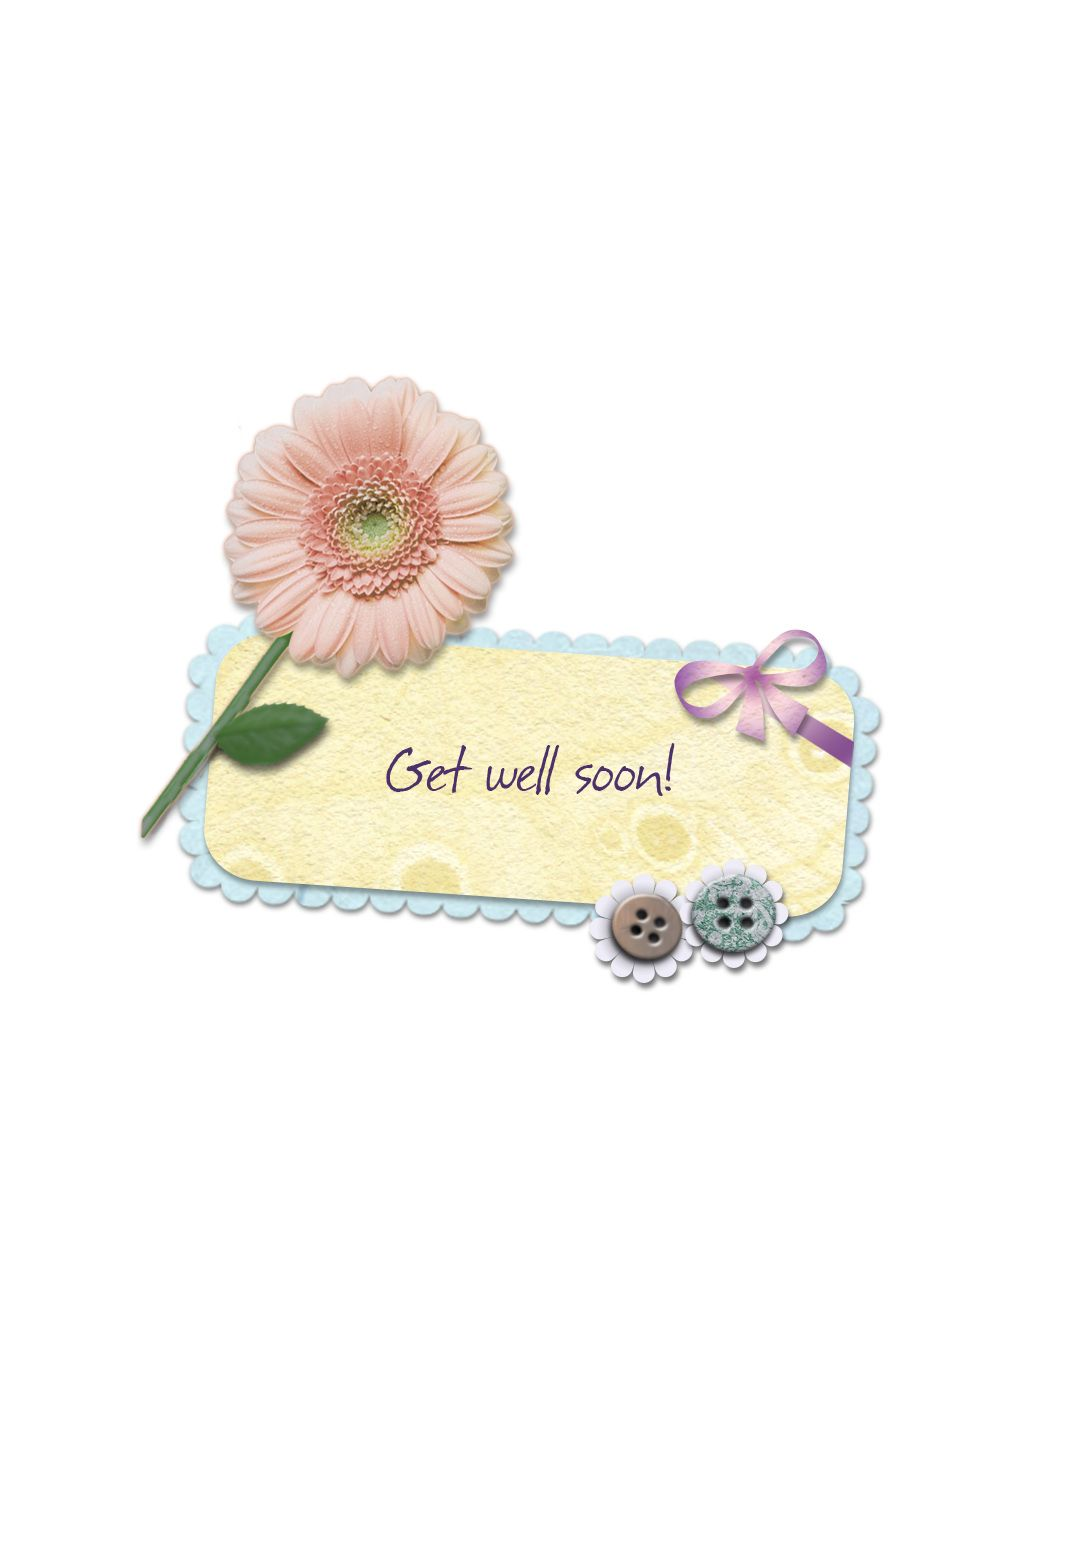 Get Well Card Free Printable Get Well Soon Greeting Card Get Well